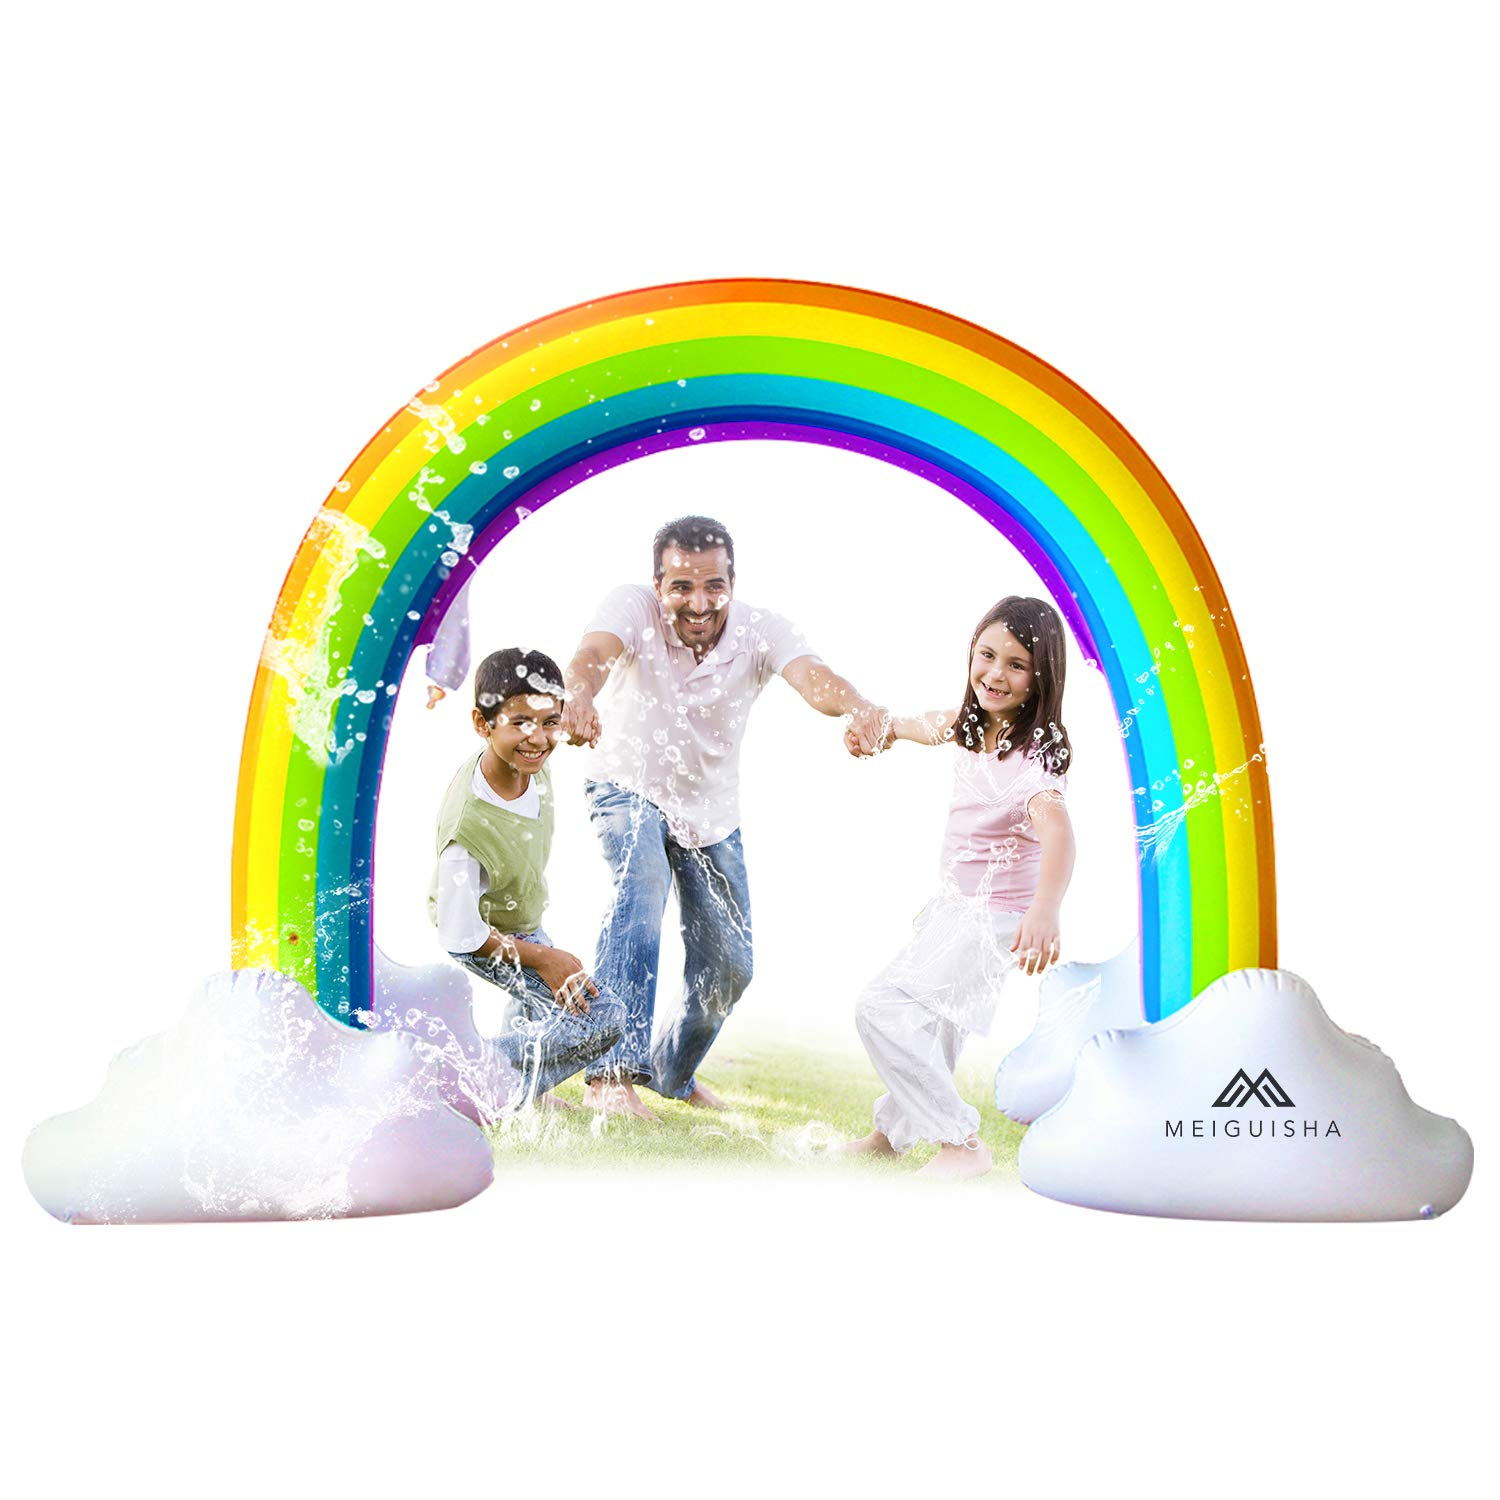 MeiGuiSha Inflatable Rainbow Yard Summer Sprinkler Toy, Over 6 Feet Long, Perfect for Summer Toy List by MeiGuiSha